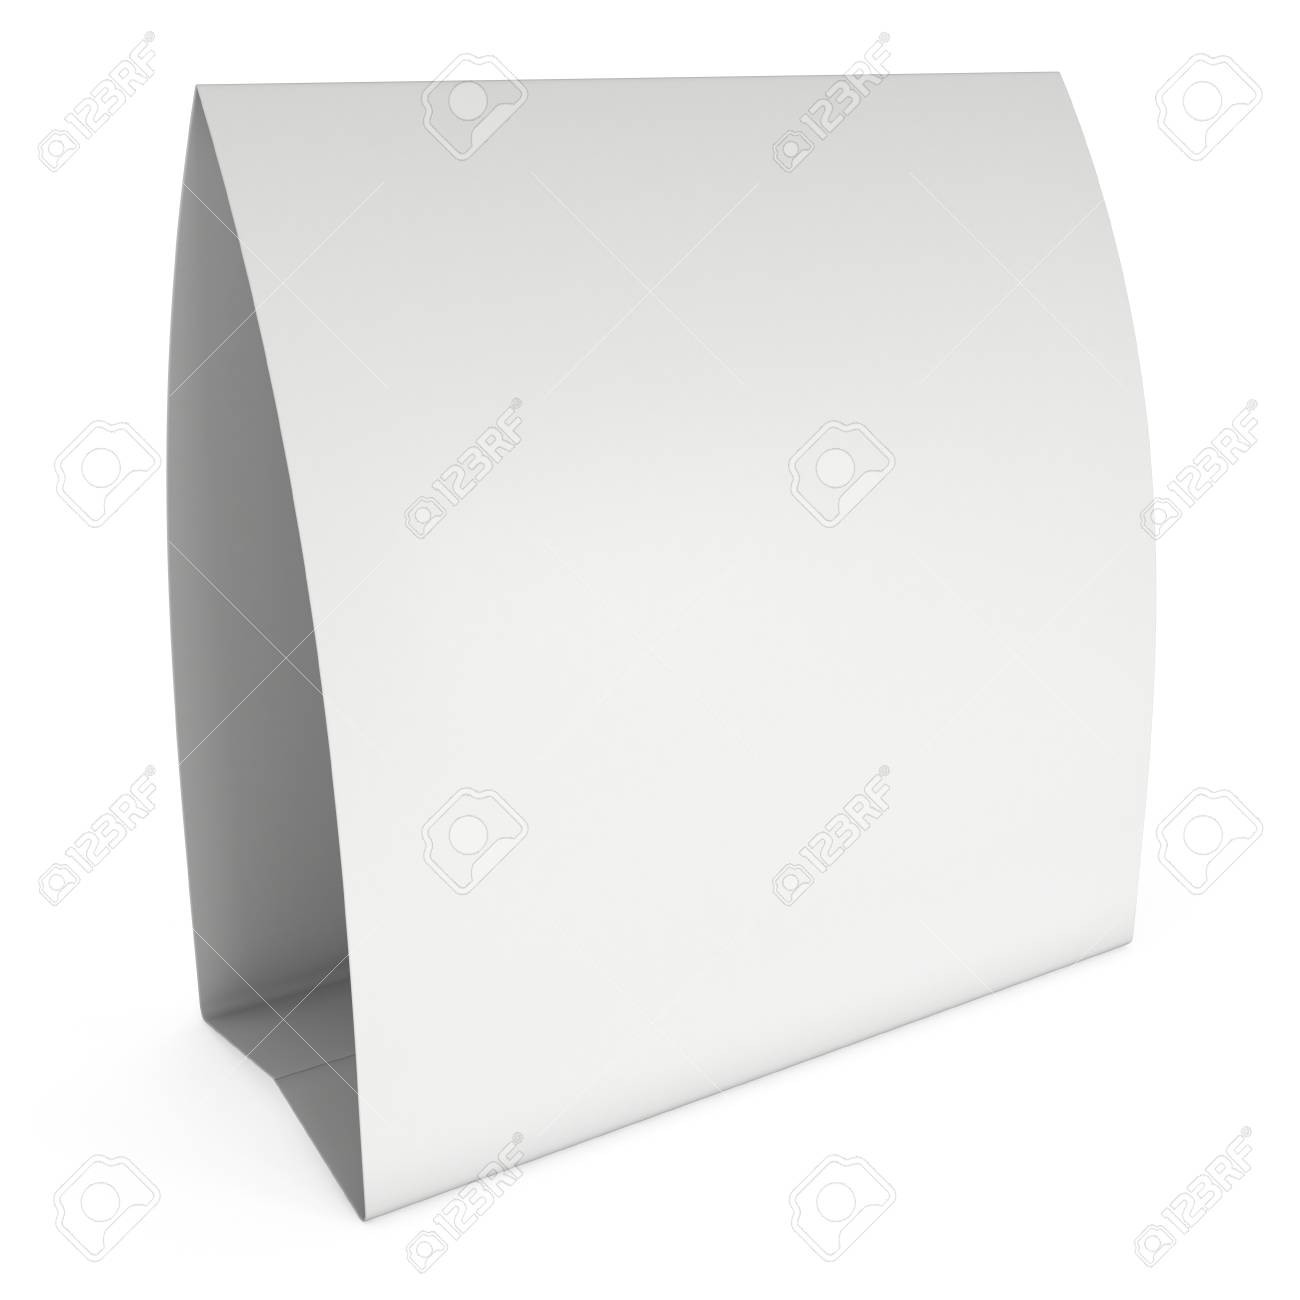 image relating to Printable Tent Card called Blank paper tent card. 3d render.